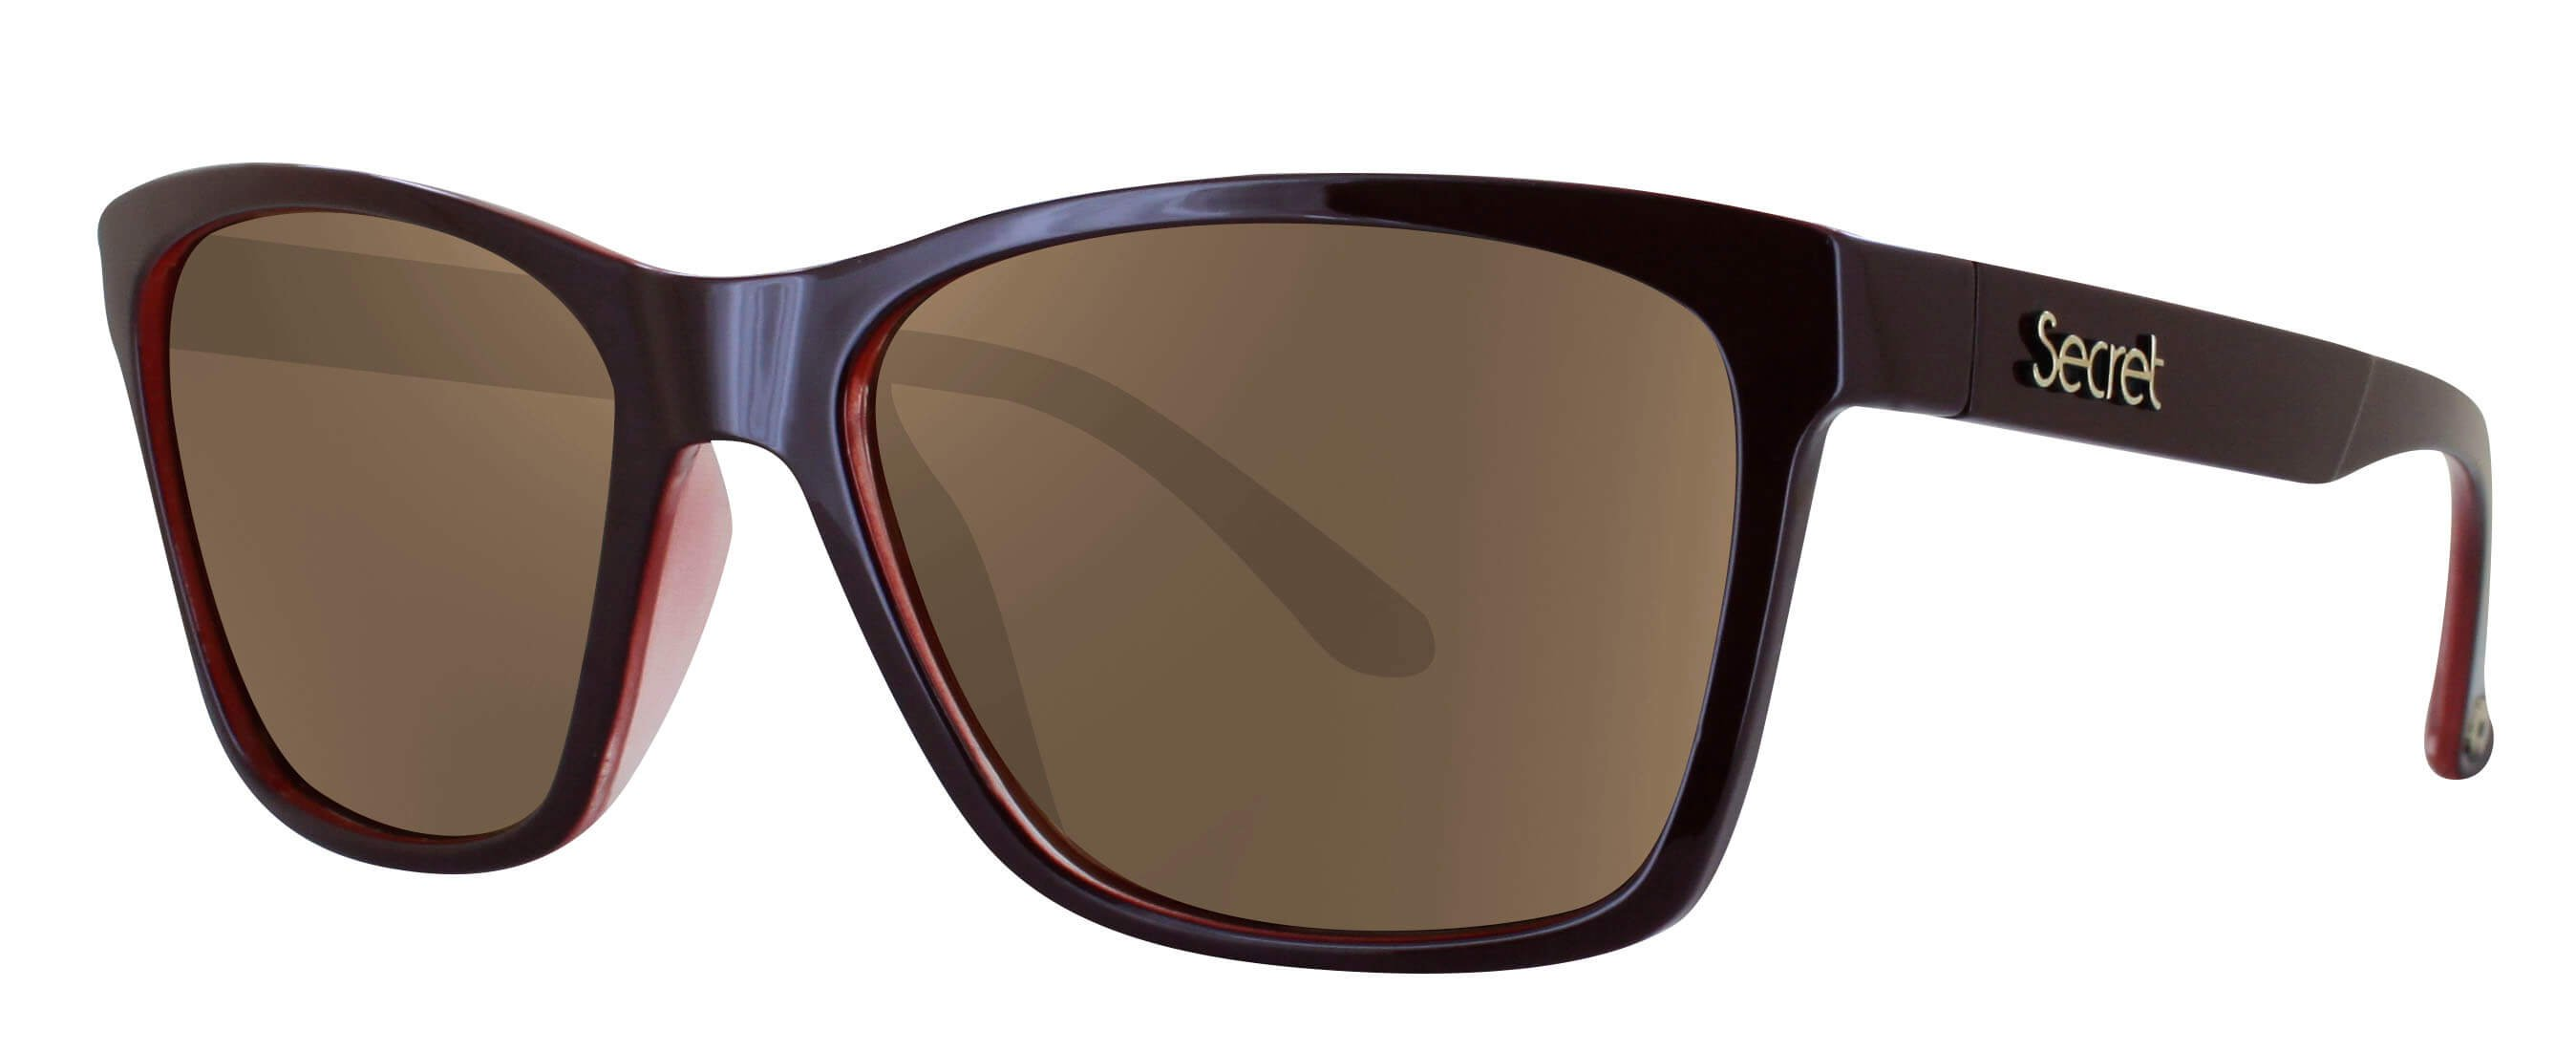 ÓC SECRET SOPHIA RED LOVE / POLARIZED BROWN